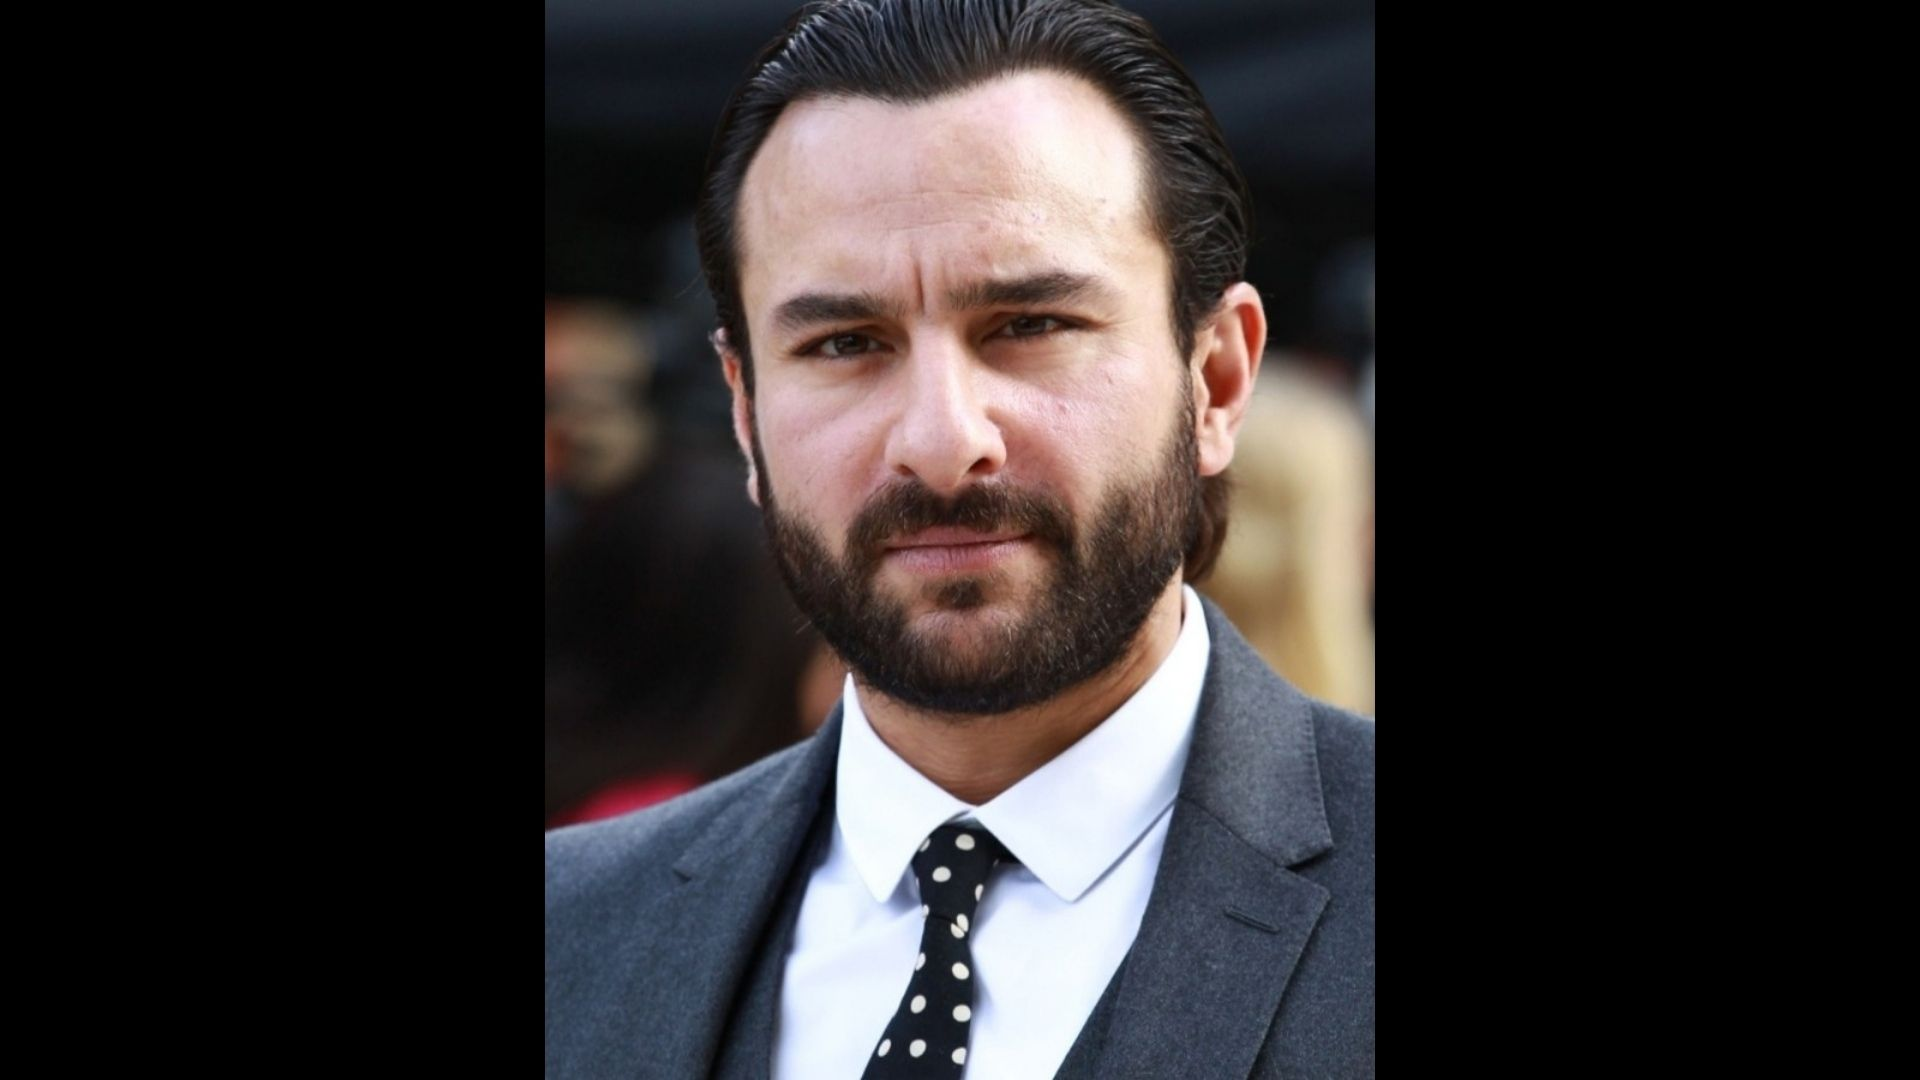 Saif Ali Khan To Reunite With Dil Chahta Hai Makers; Reveals His Character In The Project